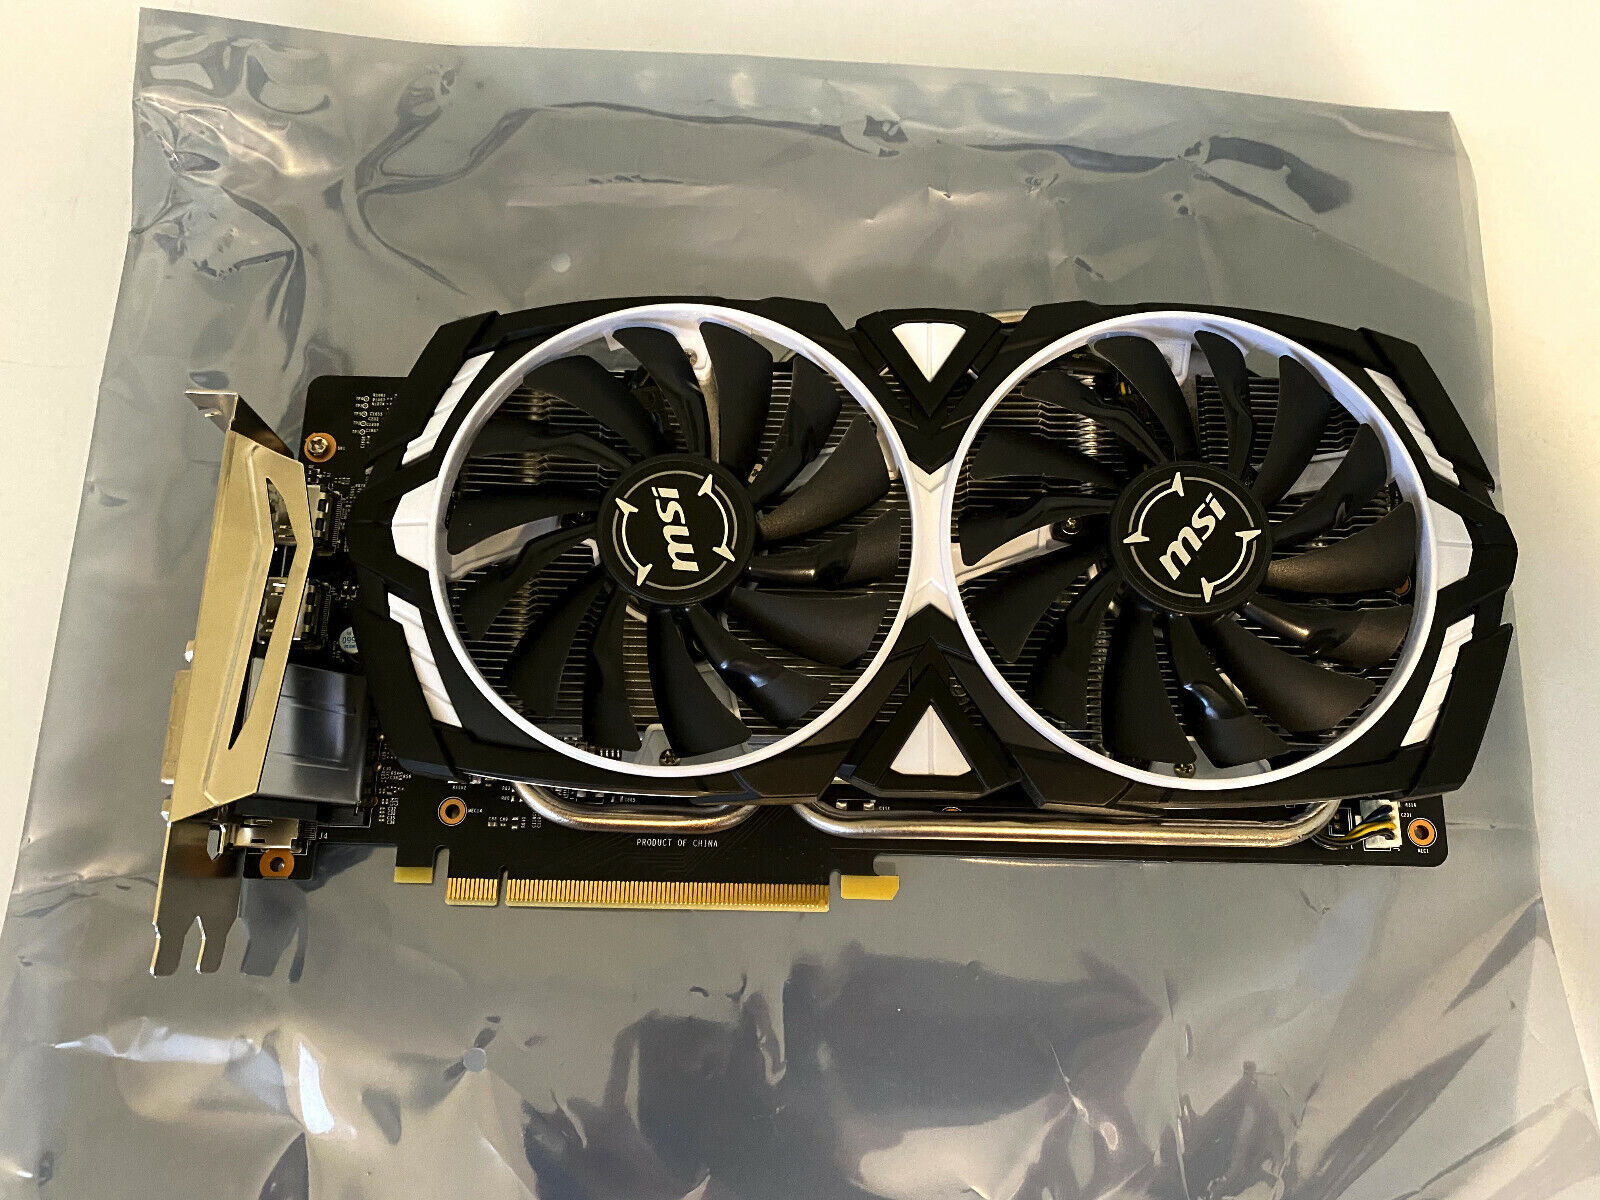 MSI GAMING GeForce GTX 1060 6GB Gaming Graphics Card - VR Ready